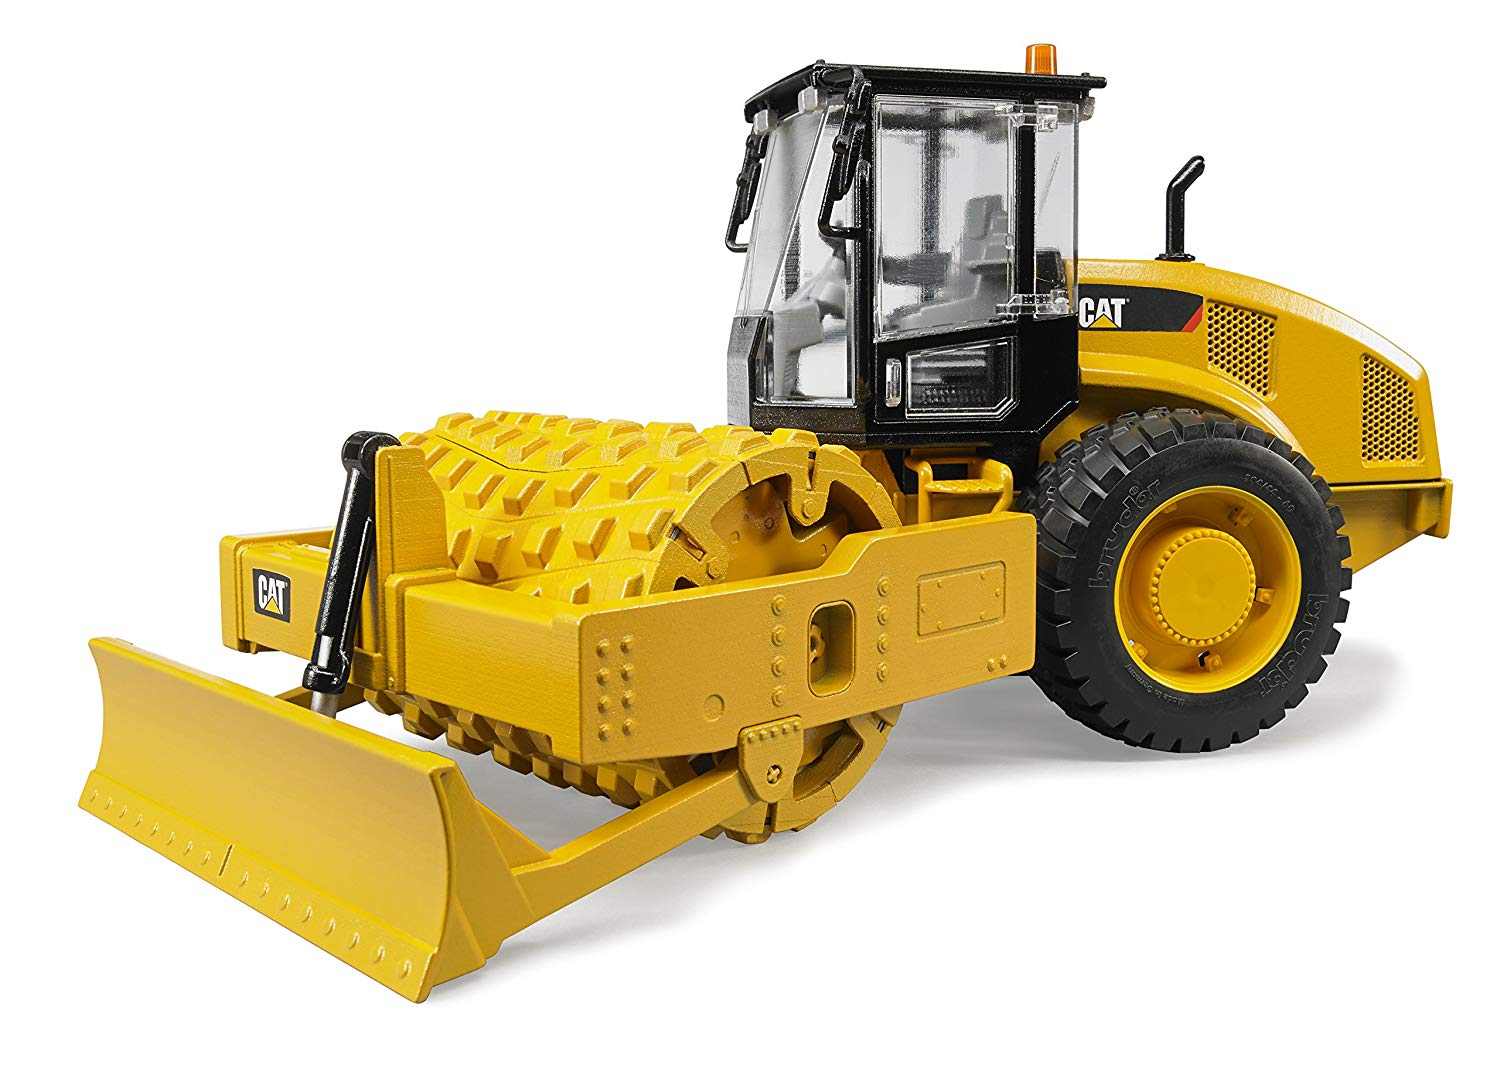 Уплотнитель почвы (CAT Vibratory Soil Compactor with Leveling Blade)